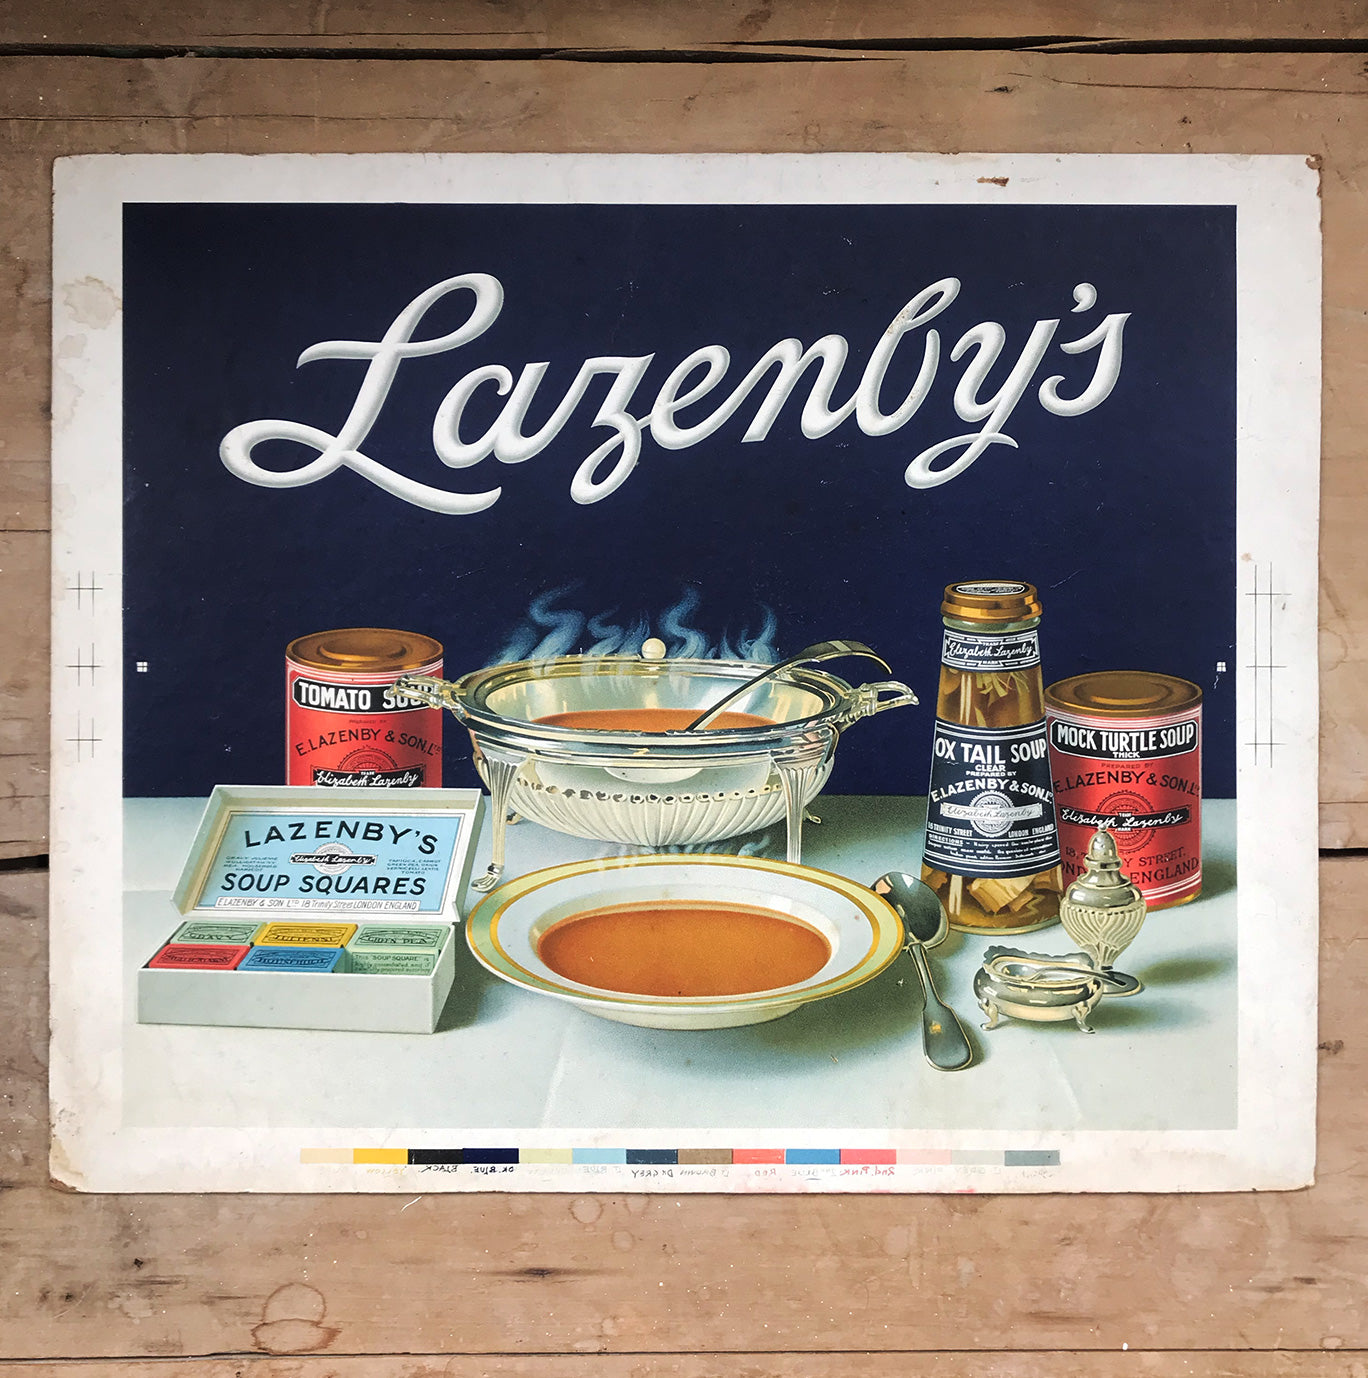 Period Lazenby's Advertising Print